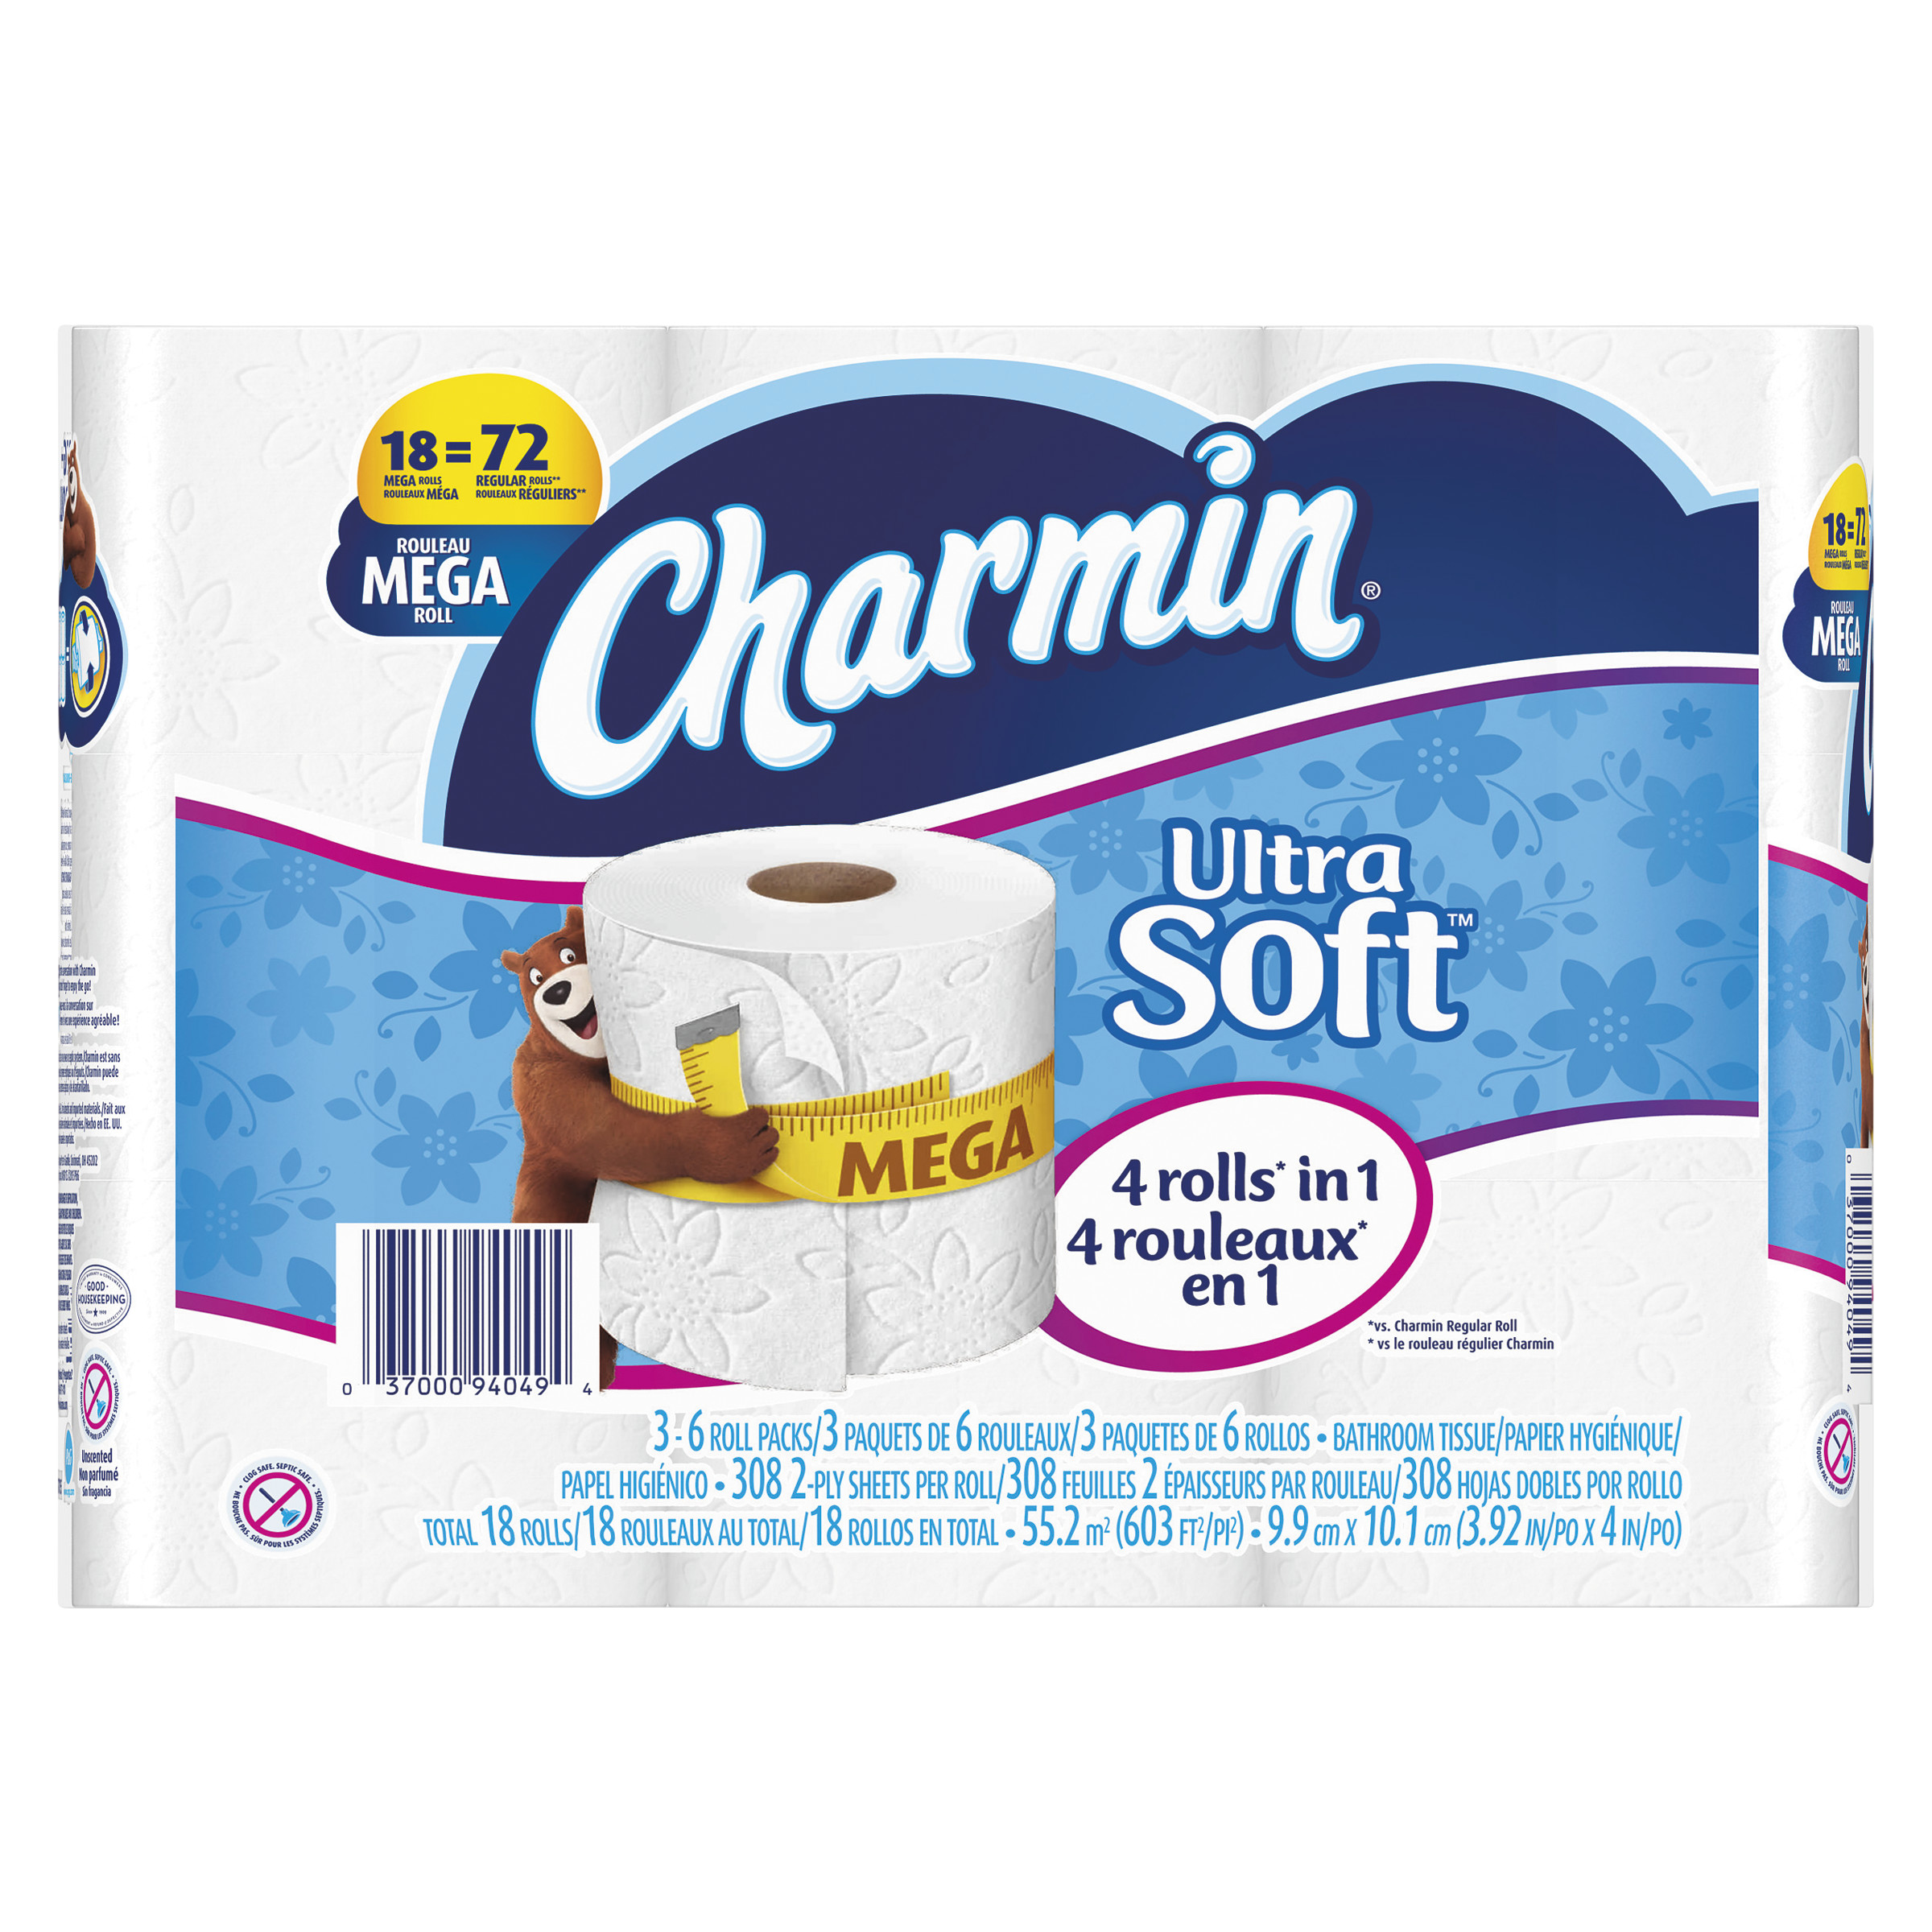 Charmin Ultra Soft Toilet Paper Mega Rolls, 308 sHeets, 18 rolls by Procter & Gamble